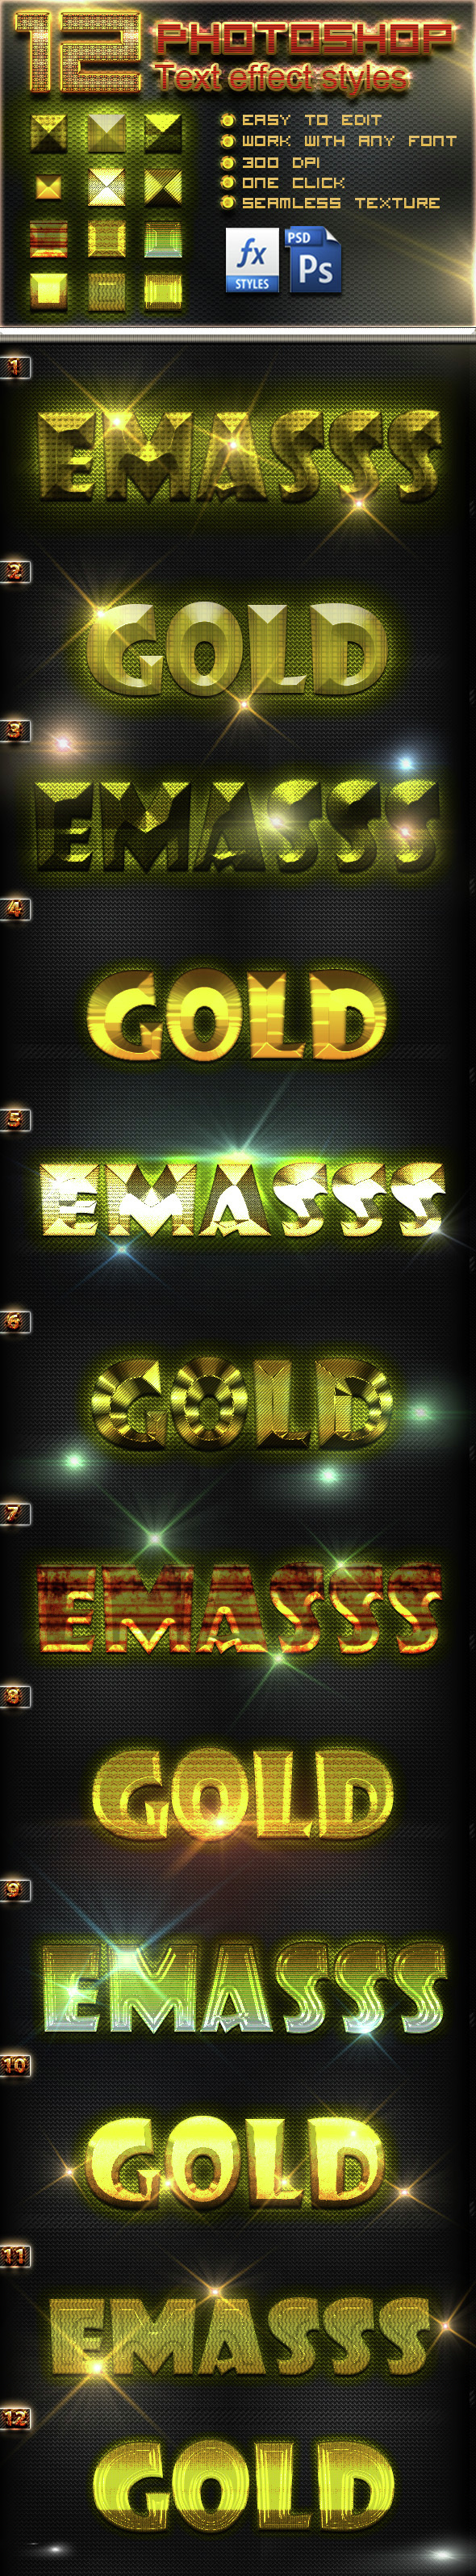 12 Photoshop Gold Text Effect Styles Vol 14 - Text Effects Styles